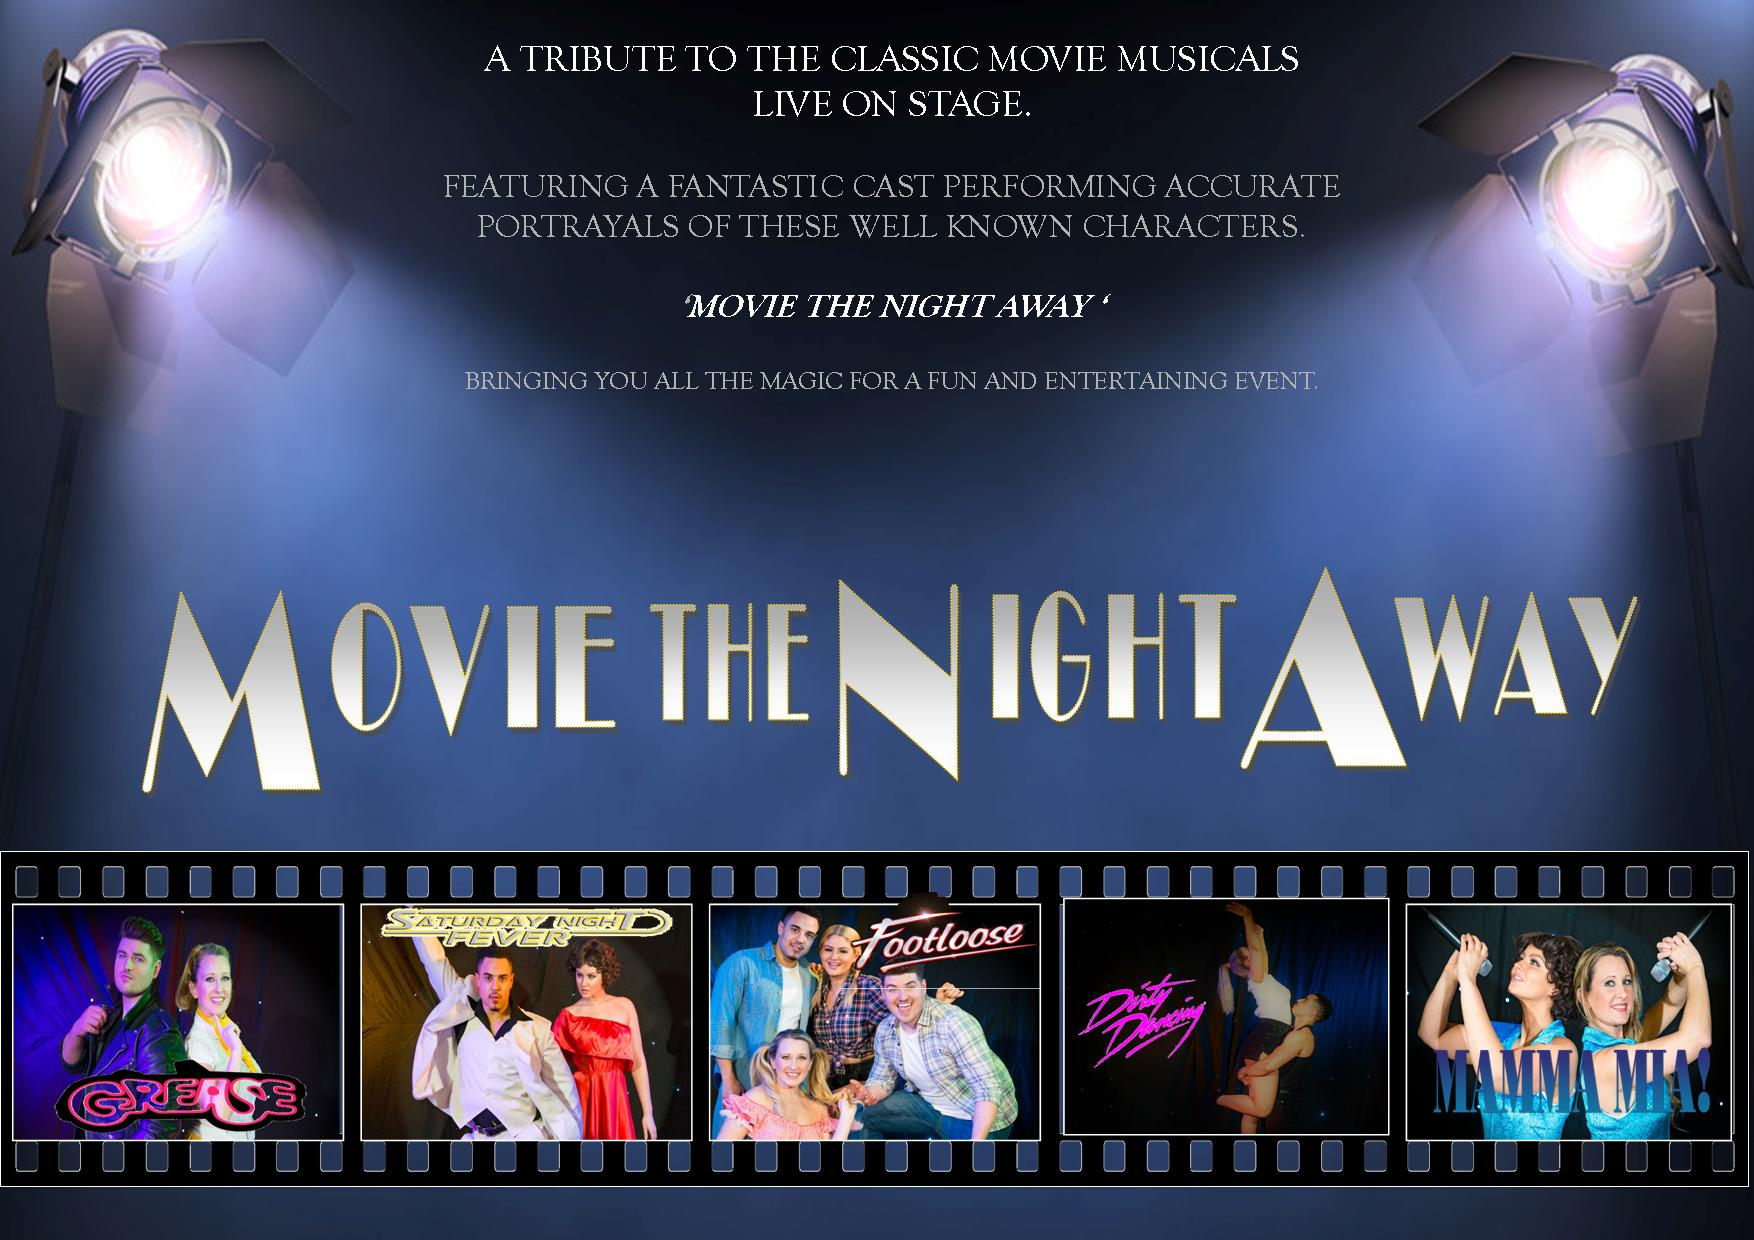 Movie The Night Away